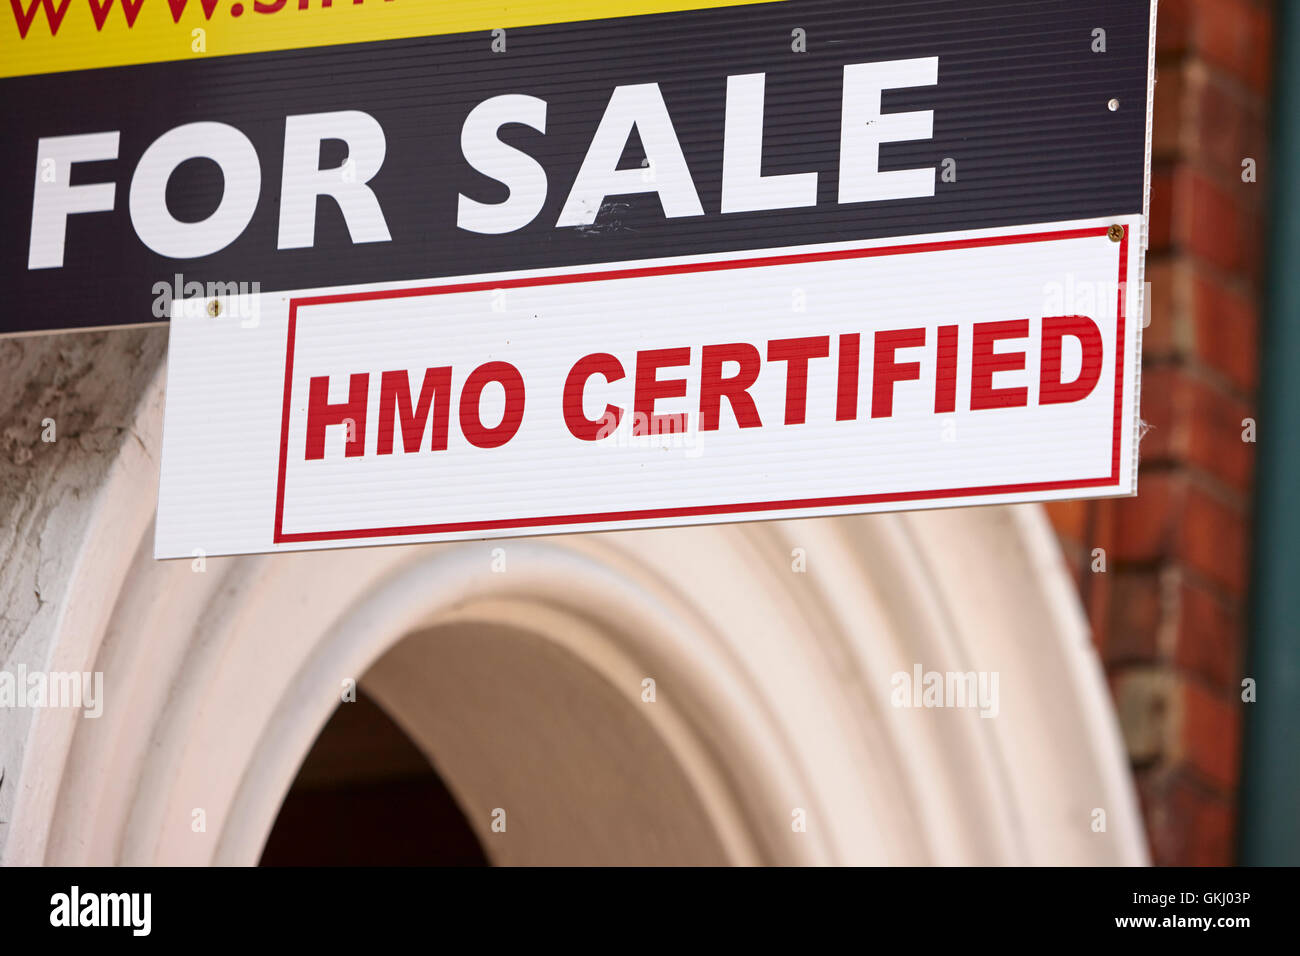 for sale hmo certified sign outside buy to let property in the holylands university area of belfast - Stock Image